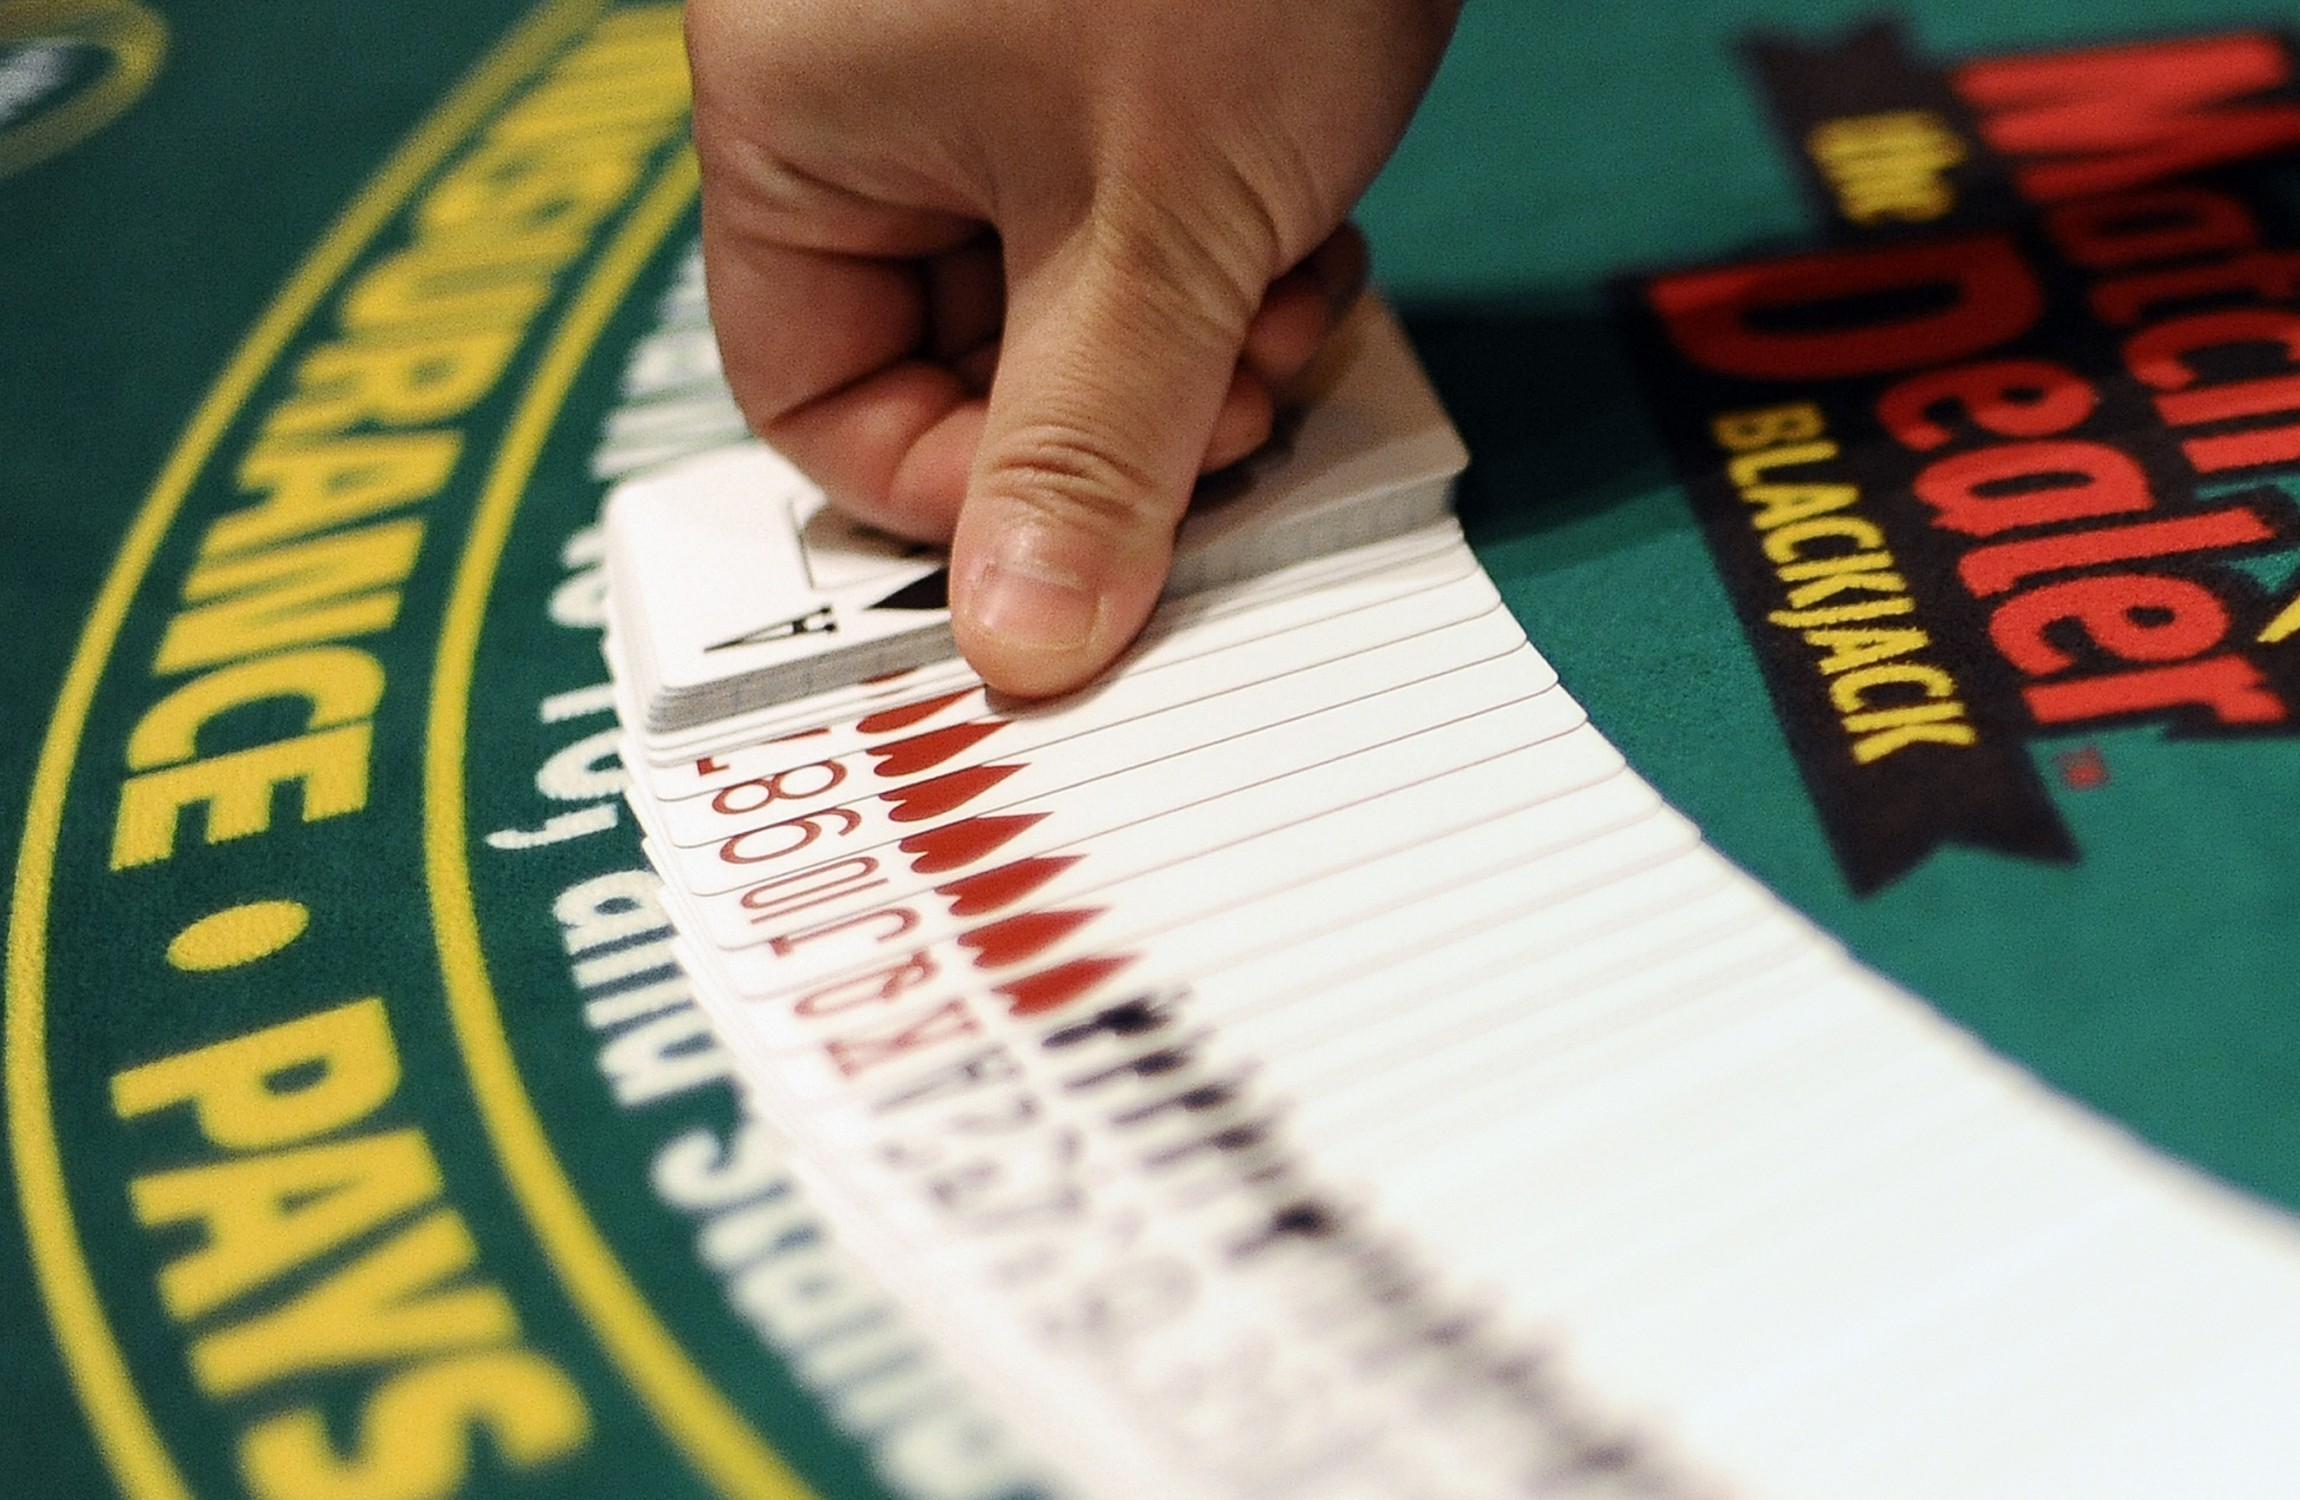 Cancellation betting system roulette